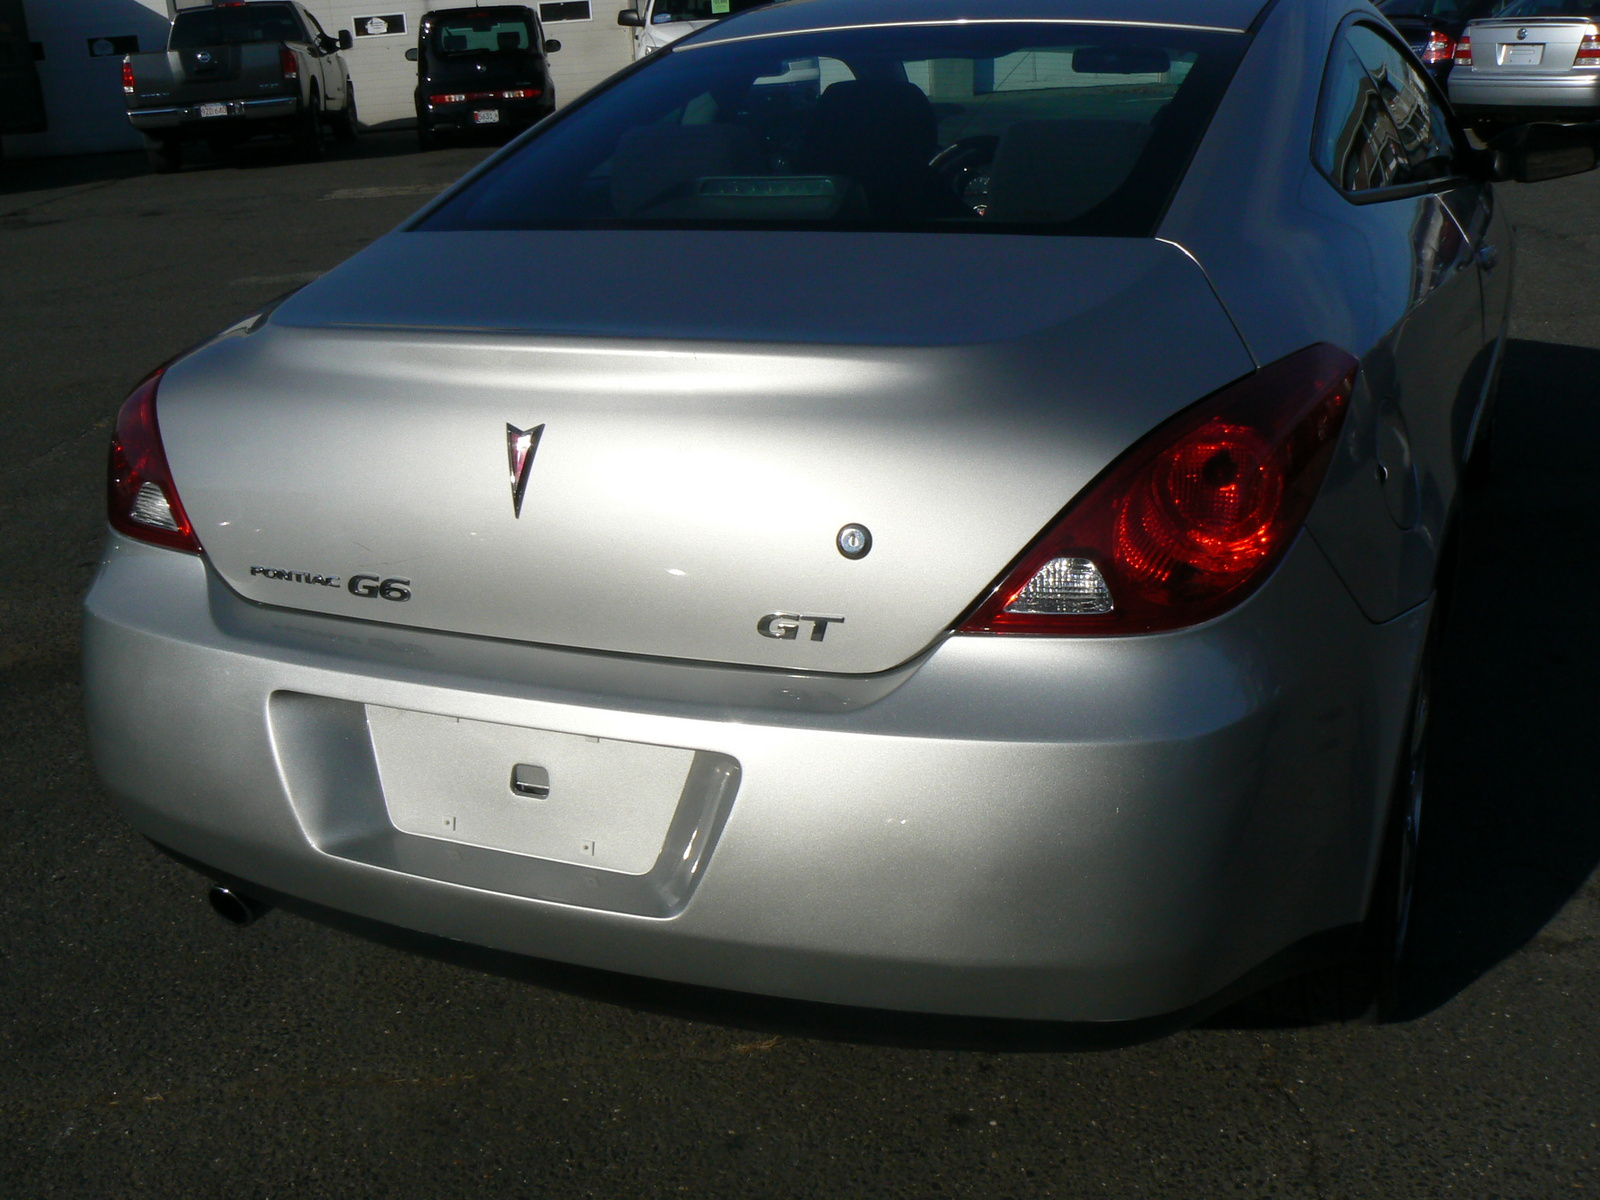 2006 Pontiac G6 GT Coupe - Pictures - Picture of 2006 Pontiac G6 GT ...